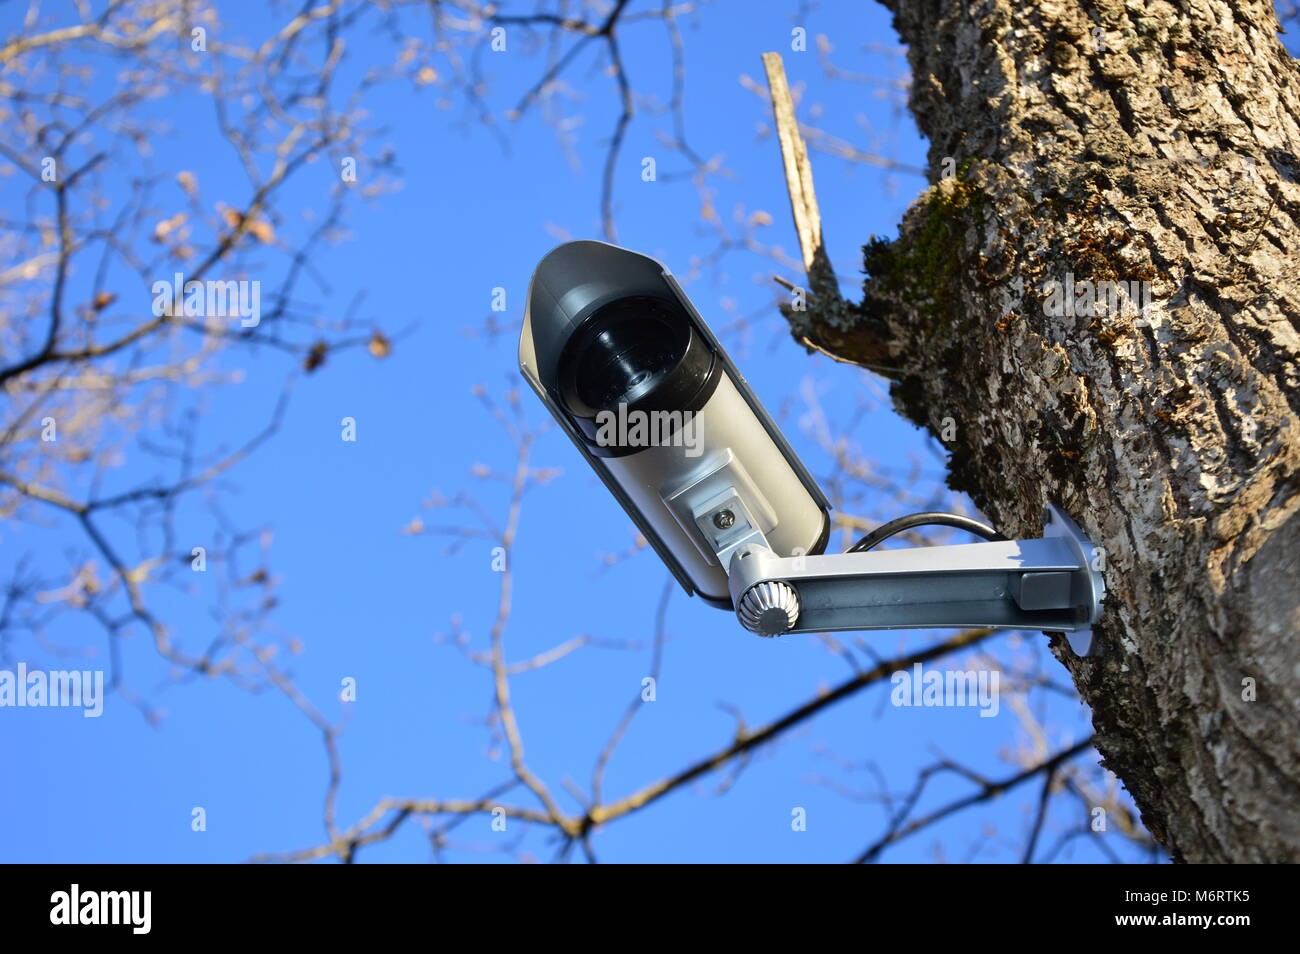 Zoom on a video surveillance camera with blue sky background Stock Photo